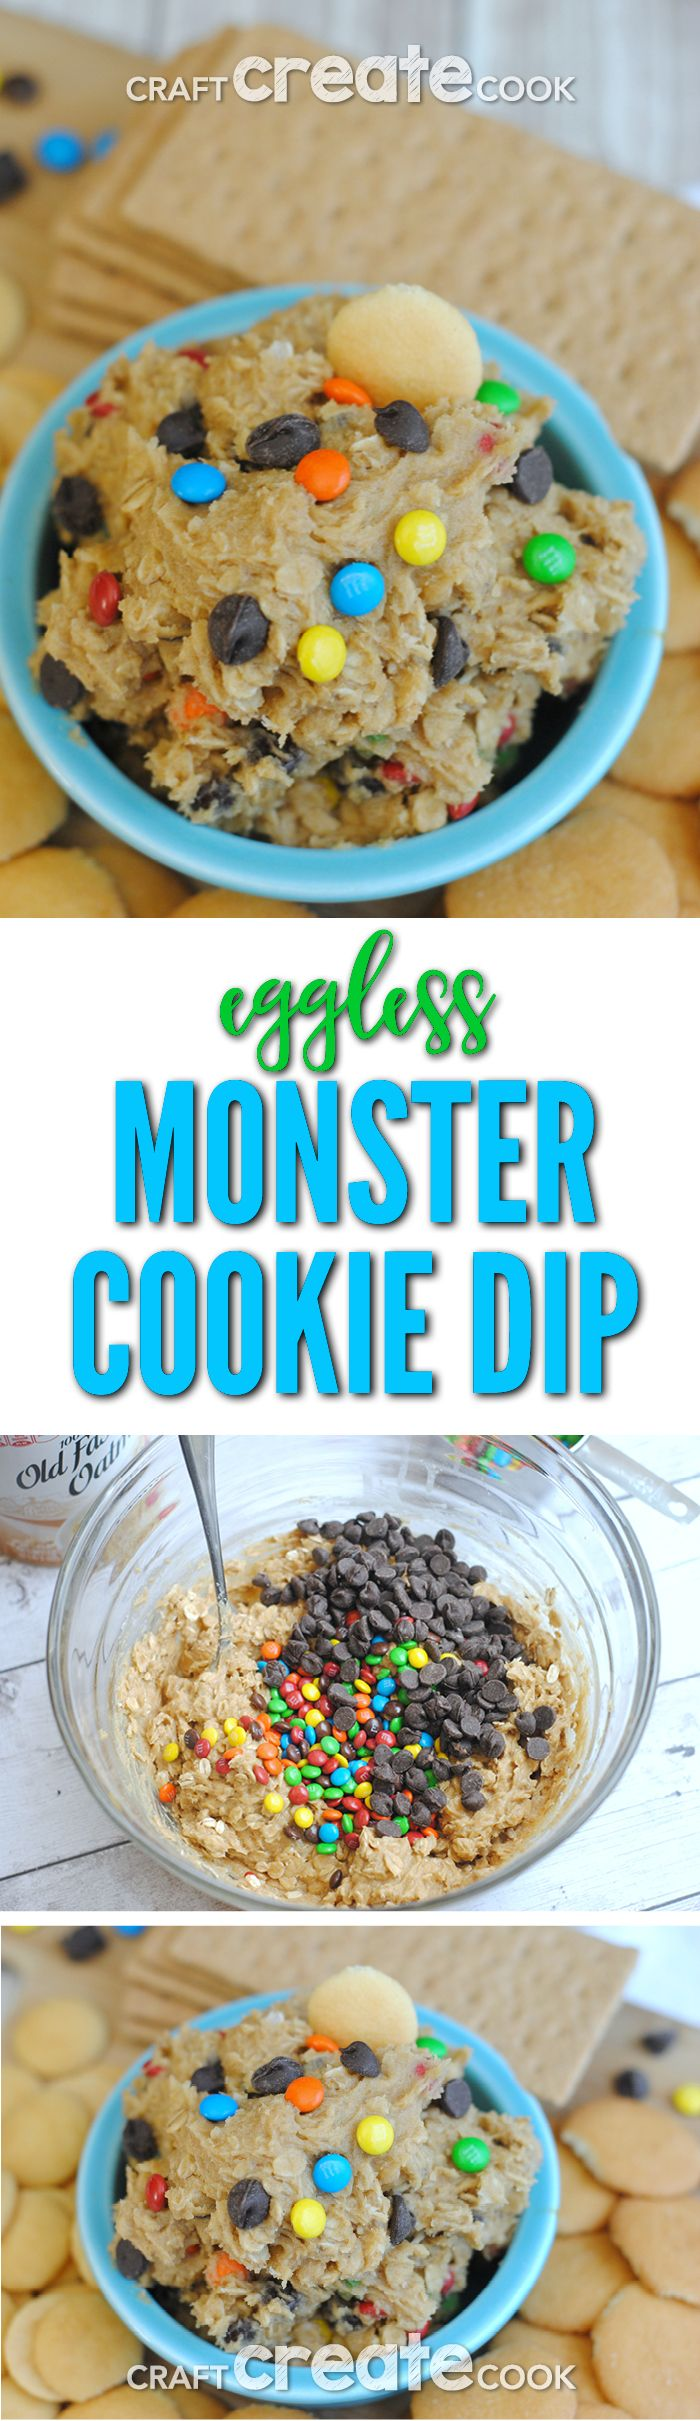 Eggless Monster Cookie Dip is perfect for when you don't want to bake cookies and just want to snack on cookie dough! via @CraftCreatCook1